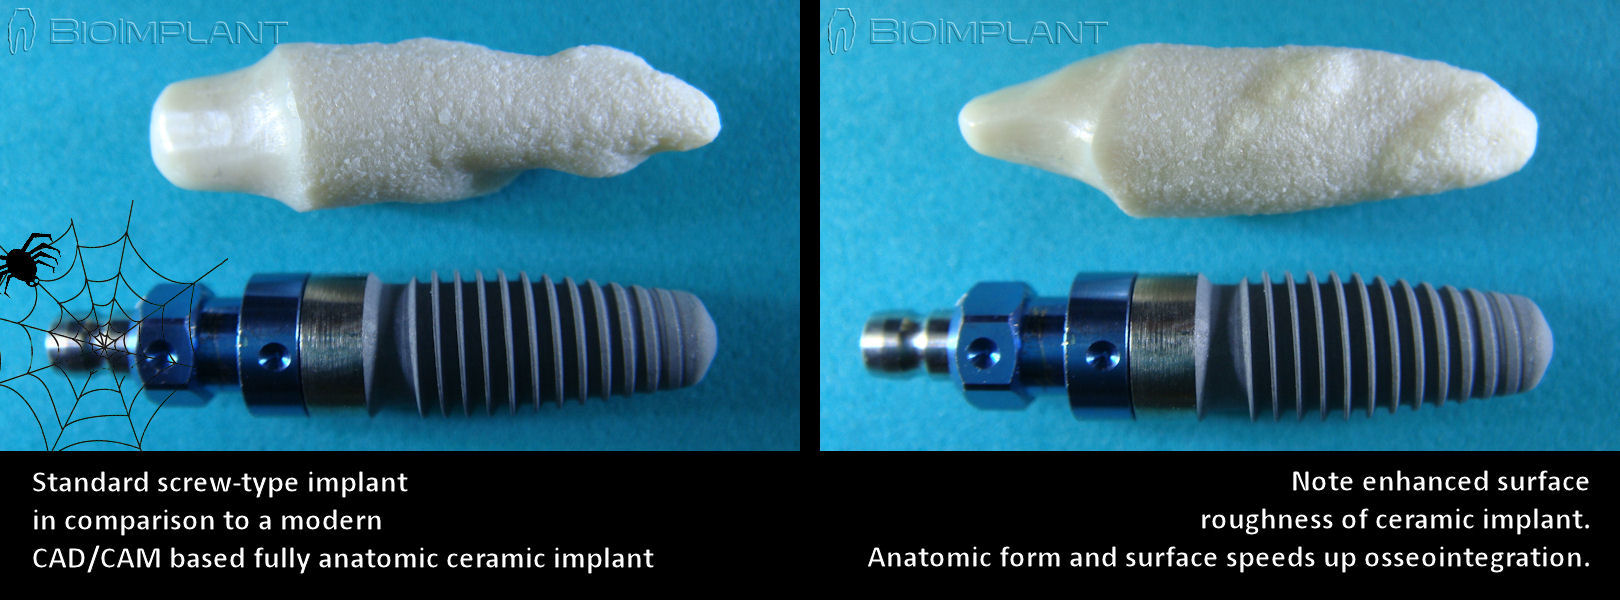 anatomic_implant_compared_to_screw_implant